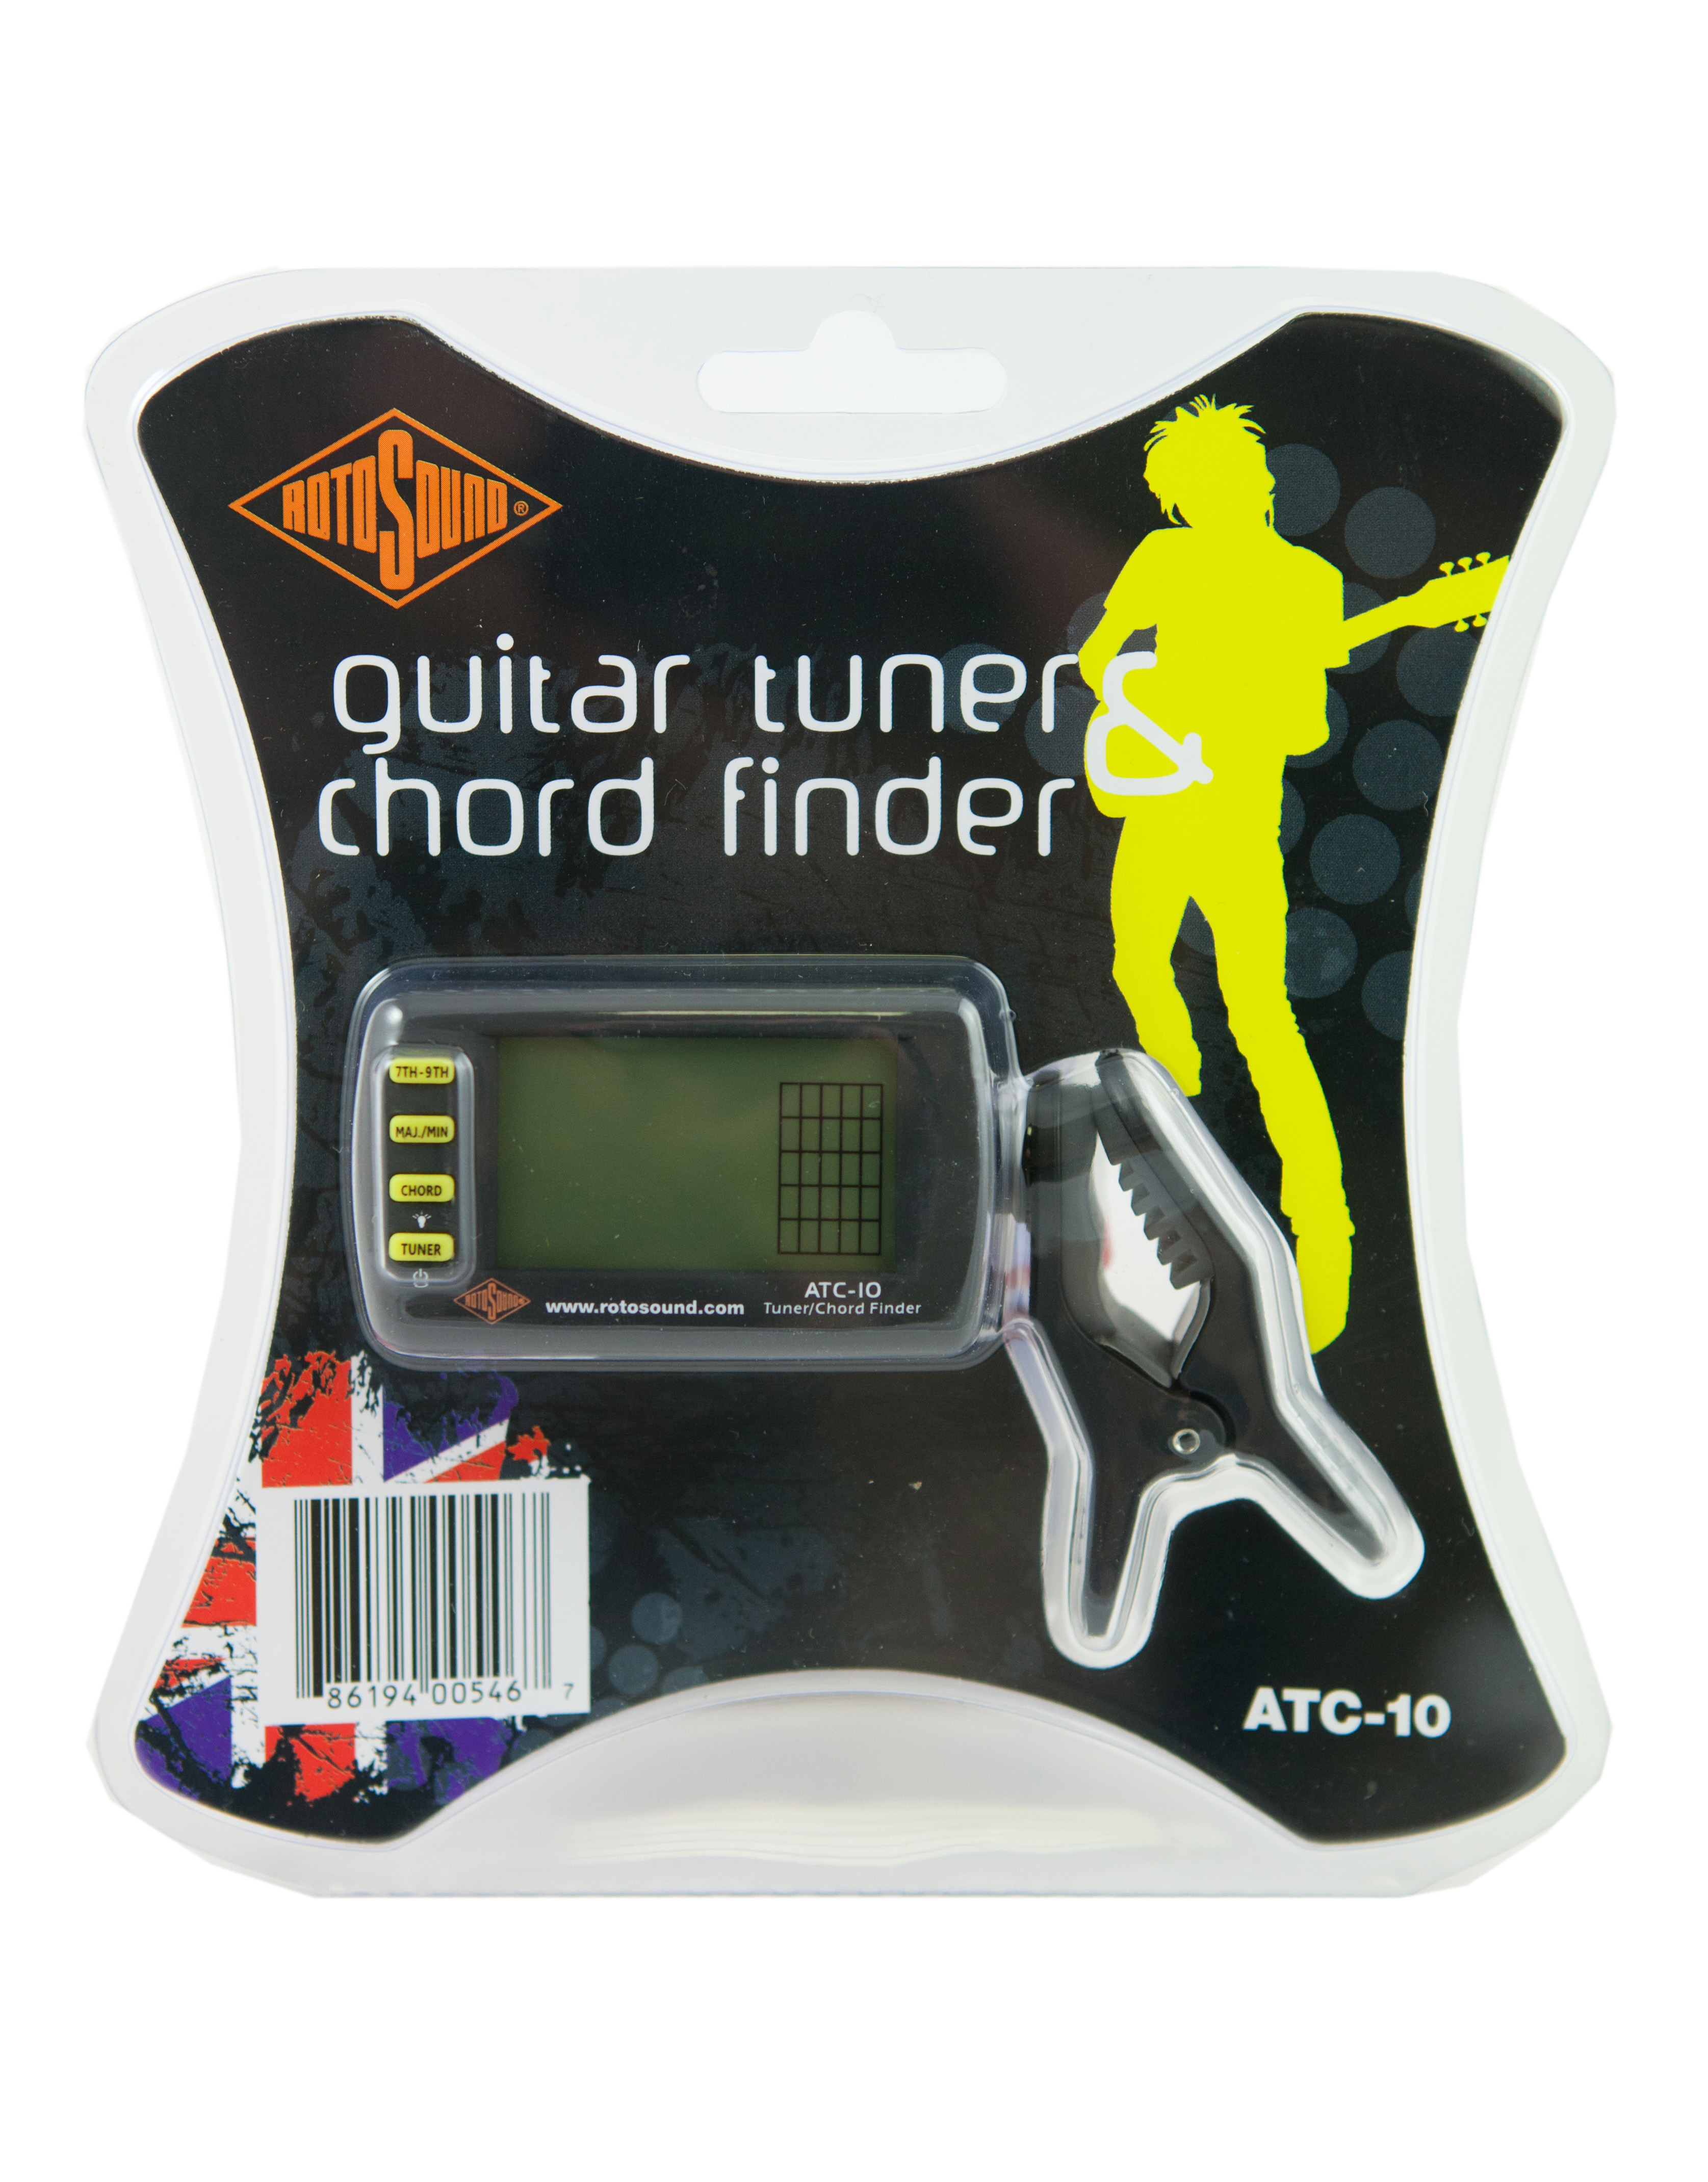 Atc10 Guitar Tuner And Chord Finder From Rotosound Guitarsite